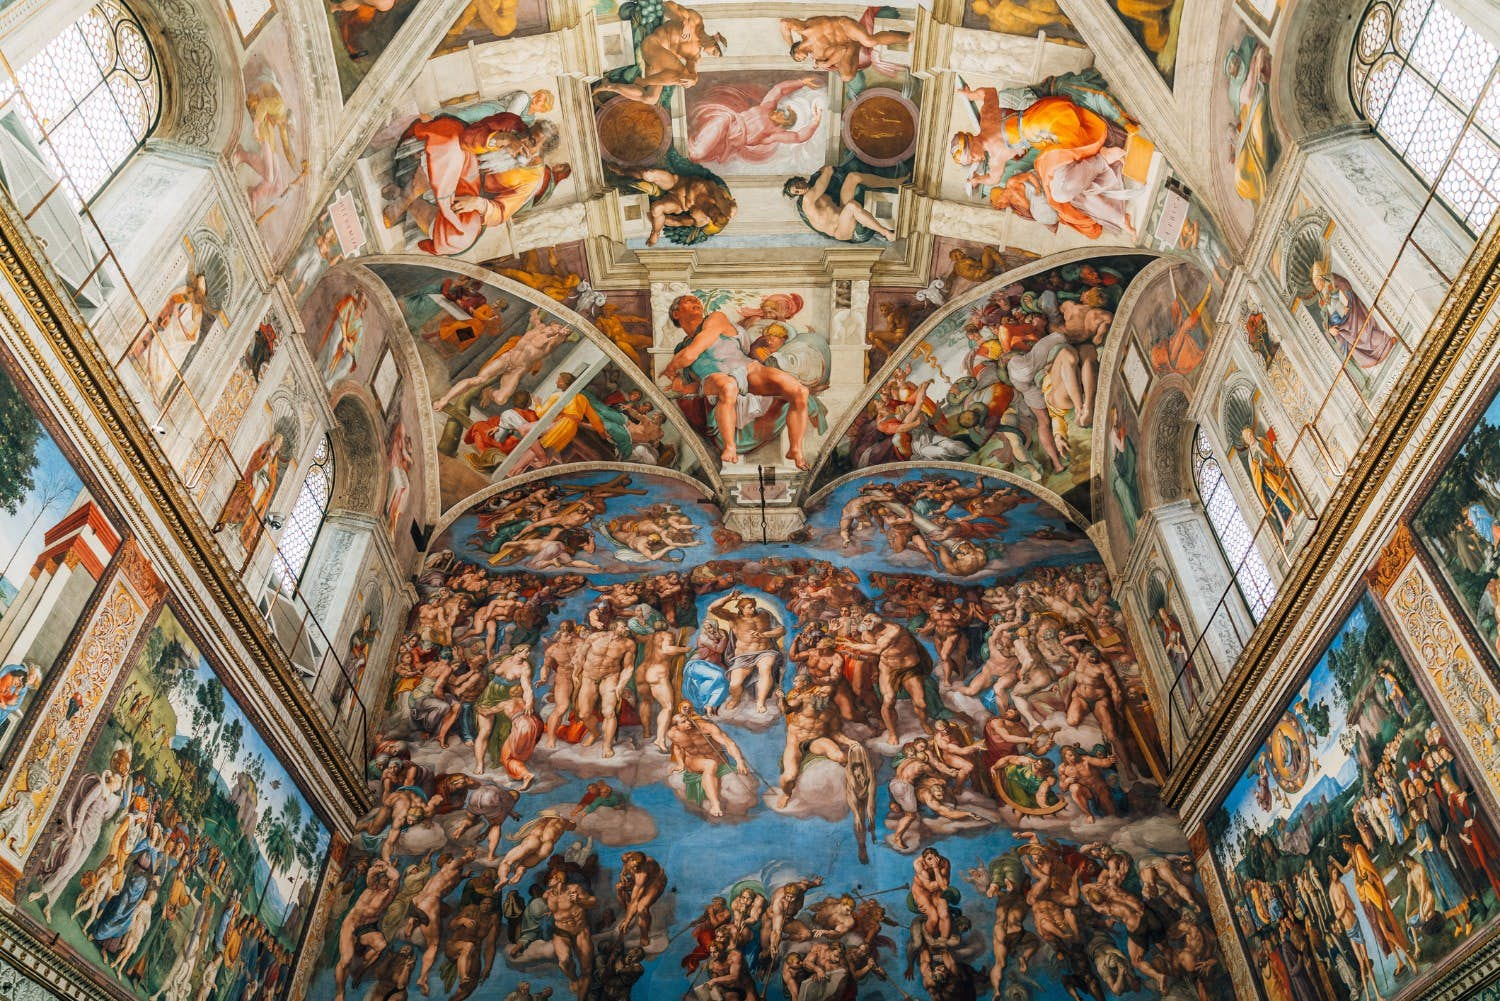 The Vatican's Sistine Chapel show will have lasers, acrobats and Sting -  Lonely Planet